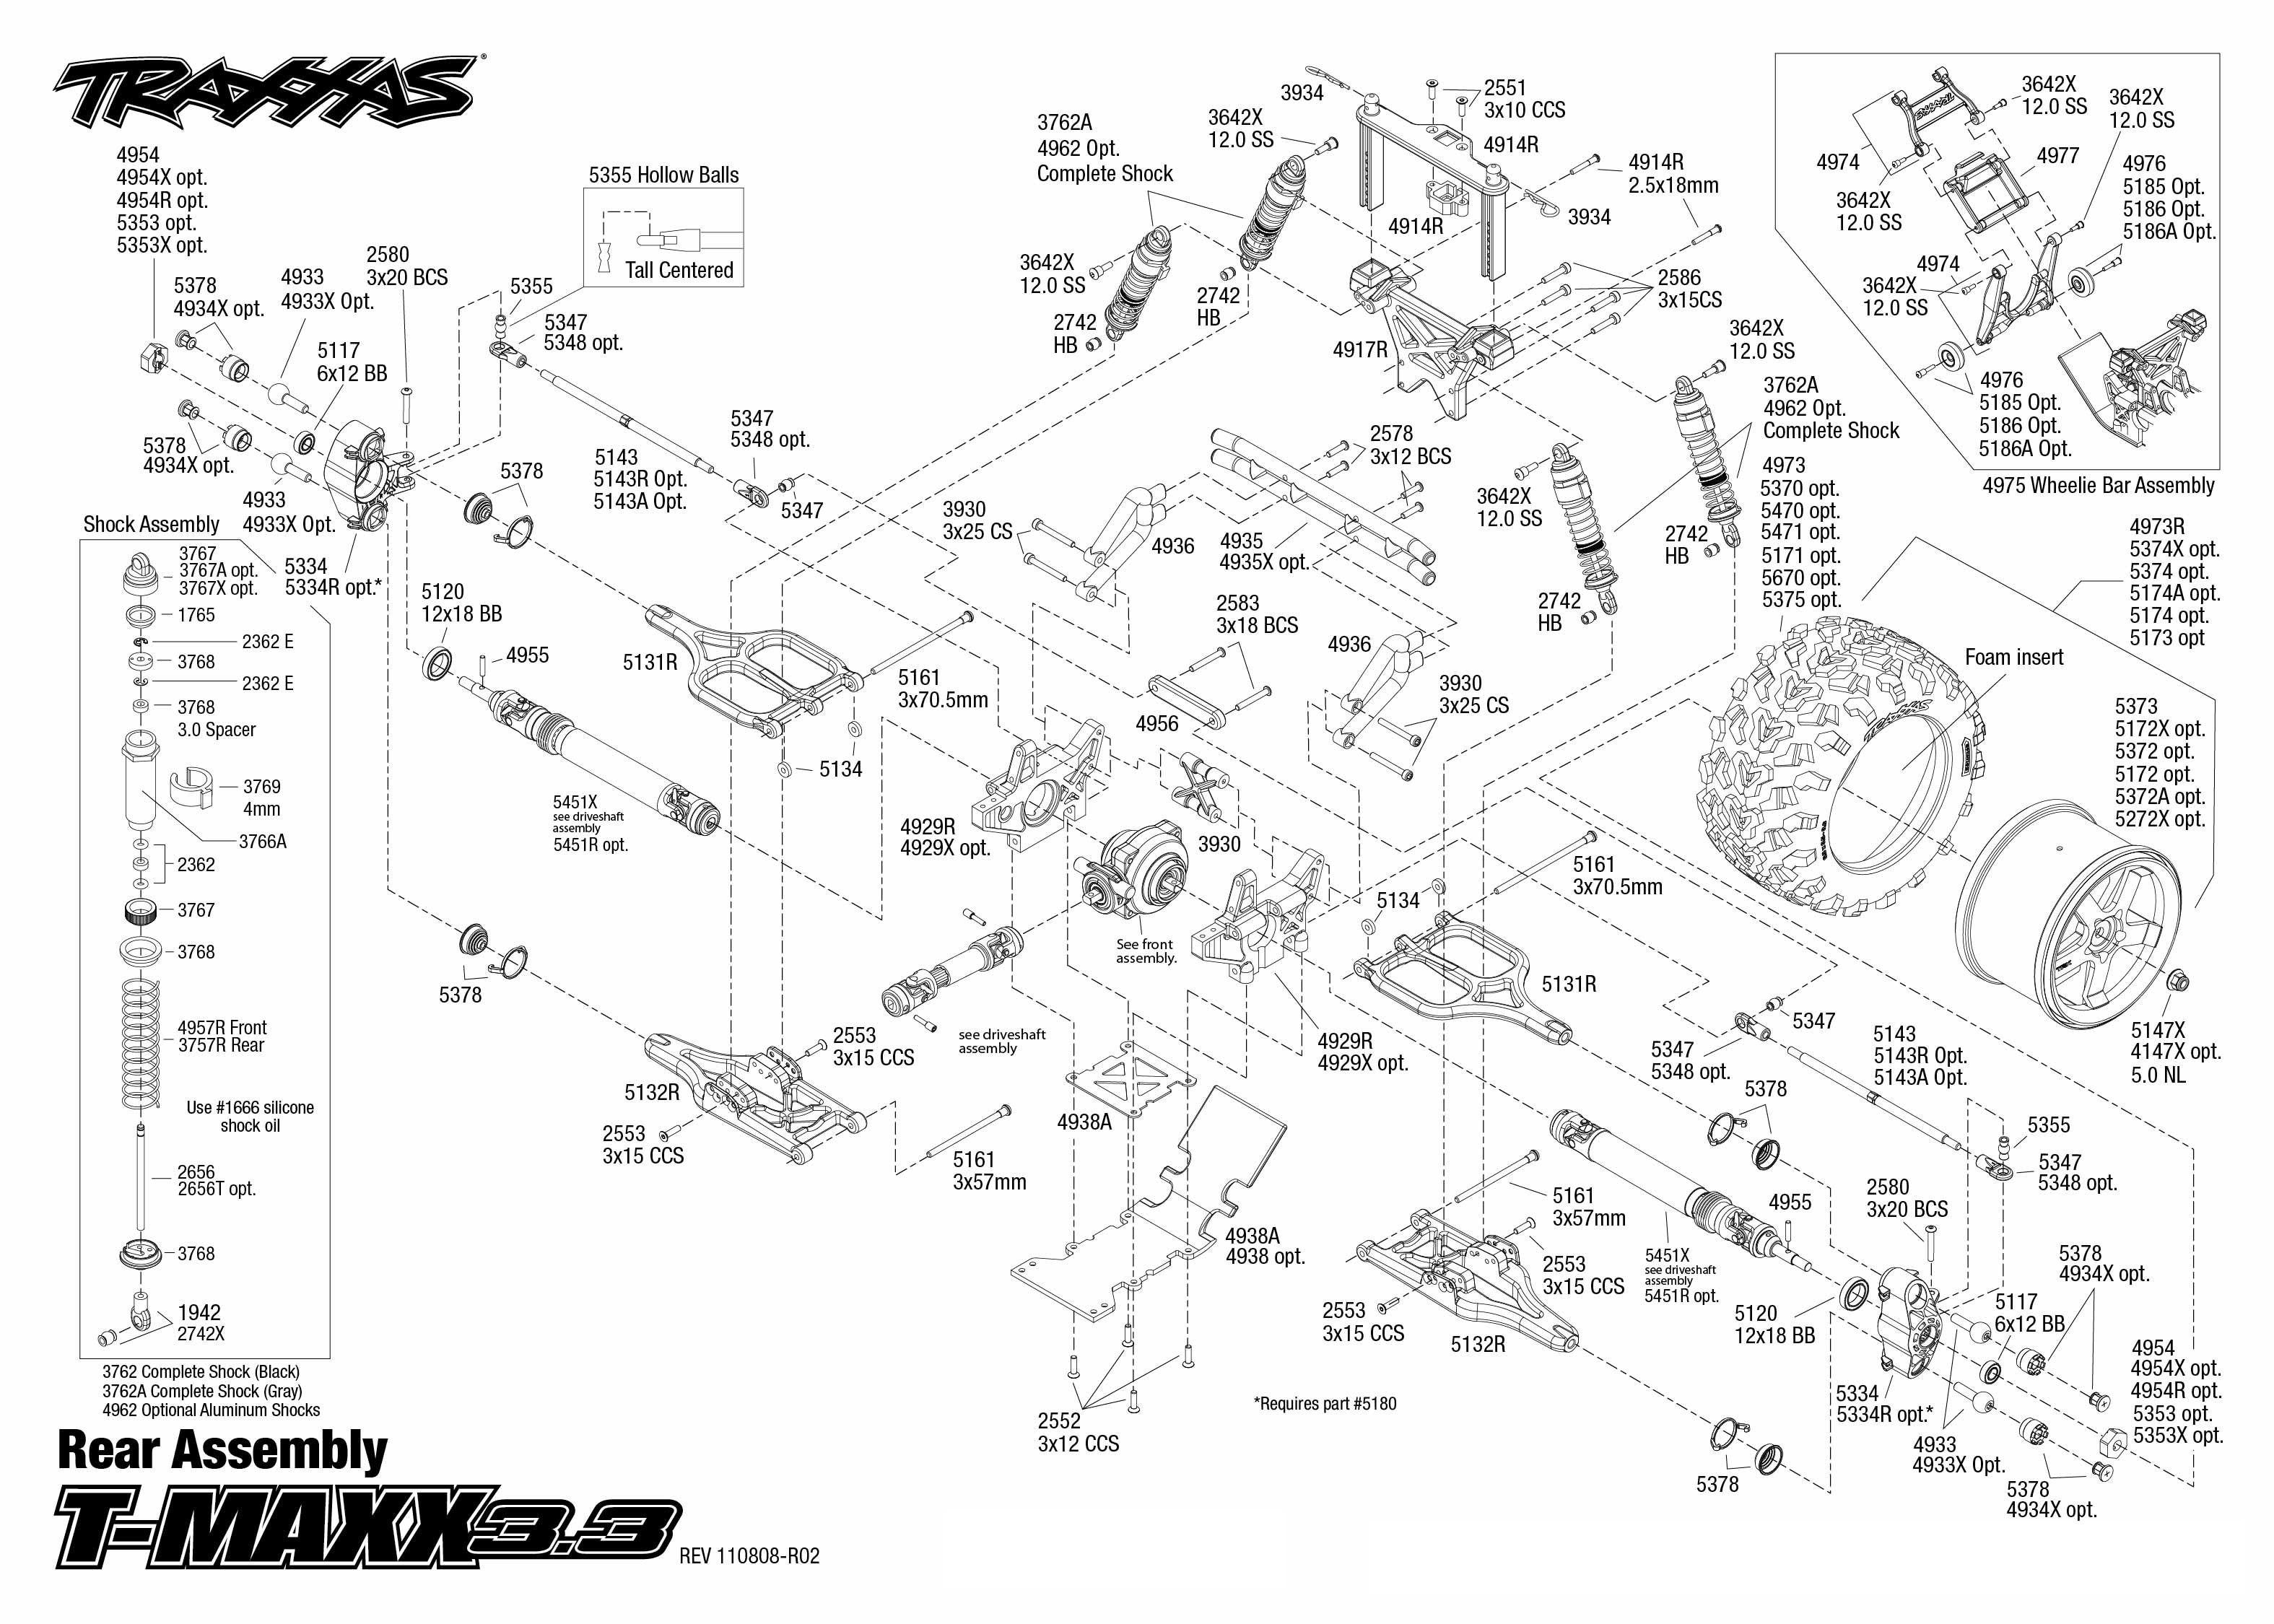 traxxas t maxx 33 owners manual how to and user guide instructions u2022 rh taxibermuda co Traxxas T-Maxx 3 3 Bing Traxxas T-Maxx 3.3 Transmission